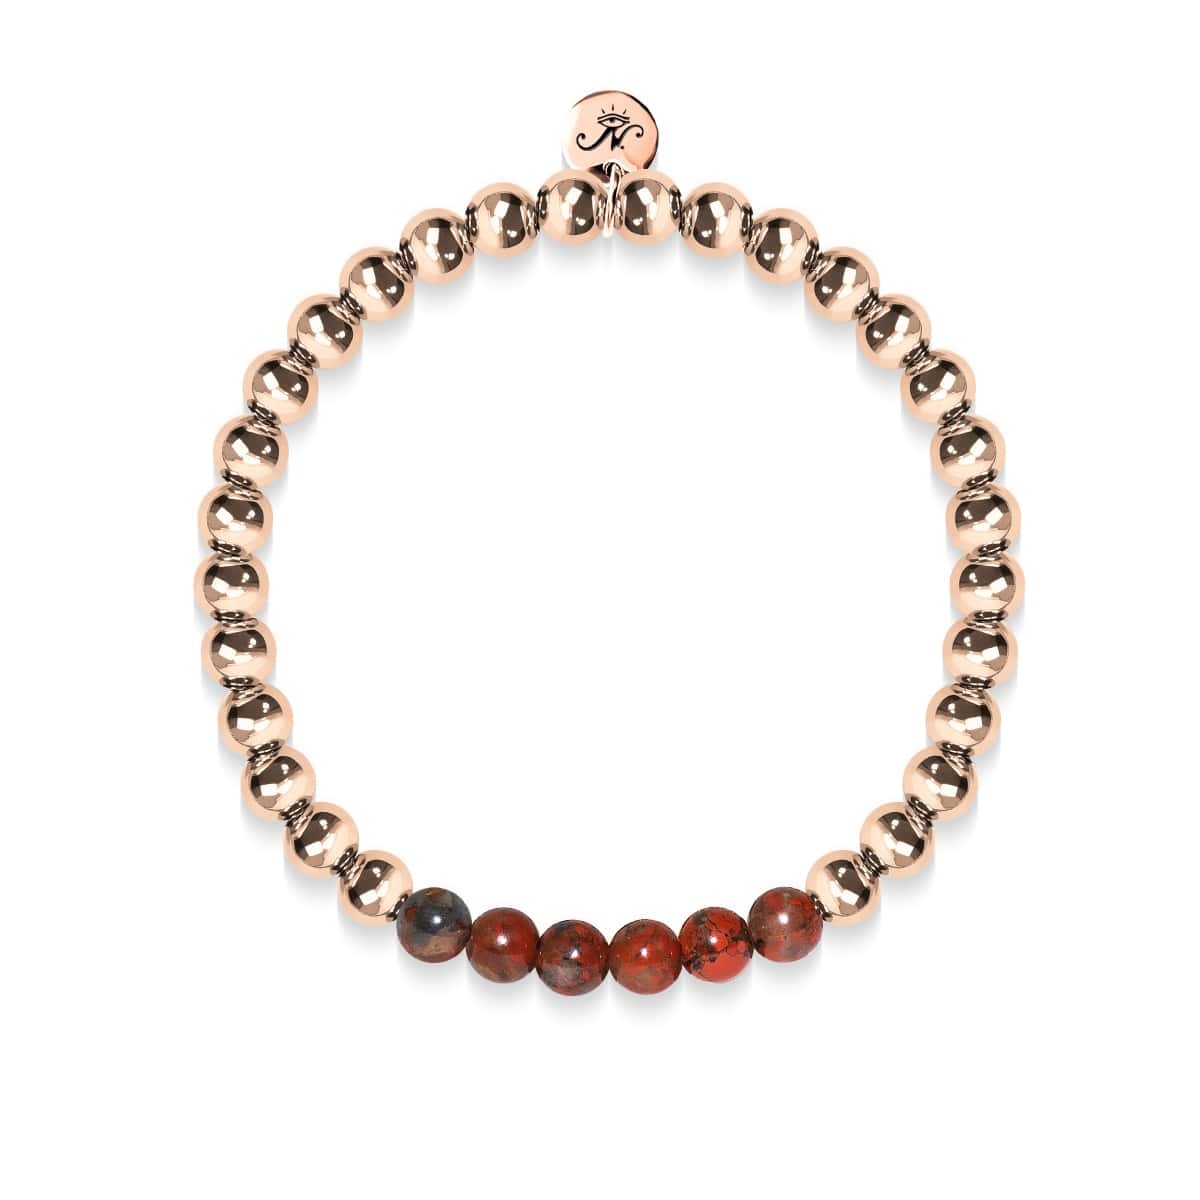 Wistful | 18k Rose Gold | Breciated Jasper | Expression Bracelet